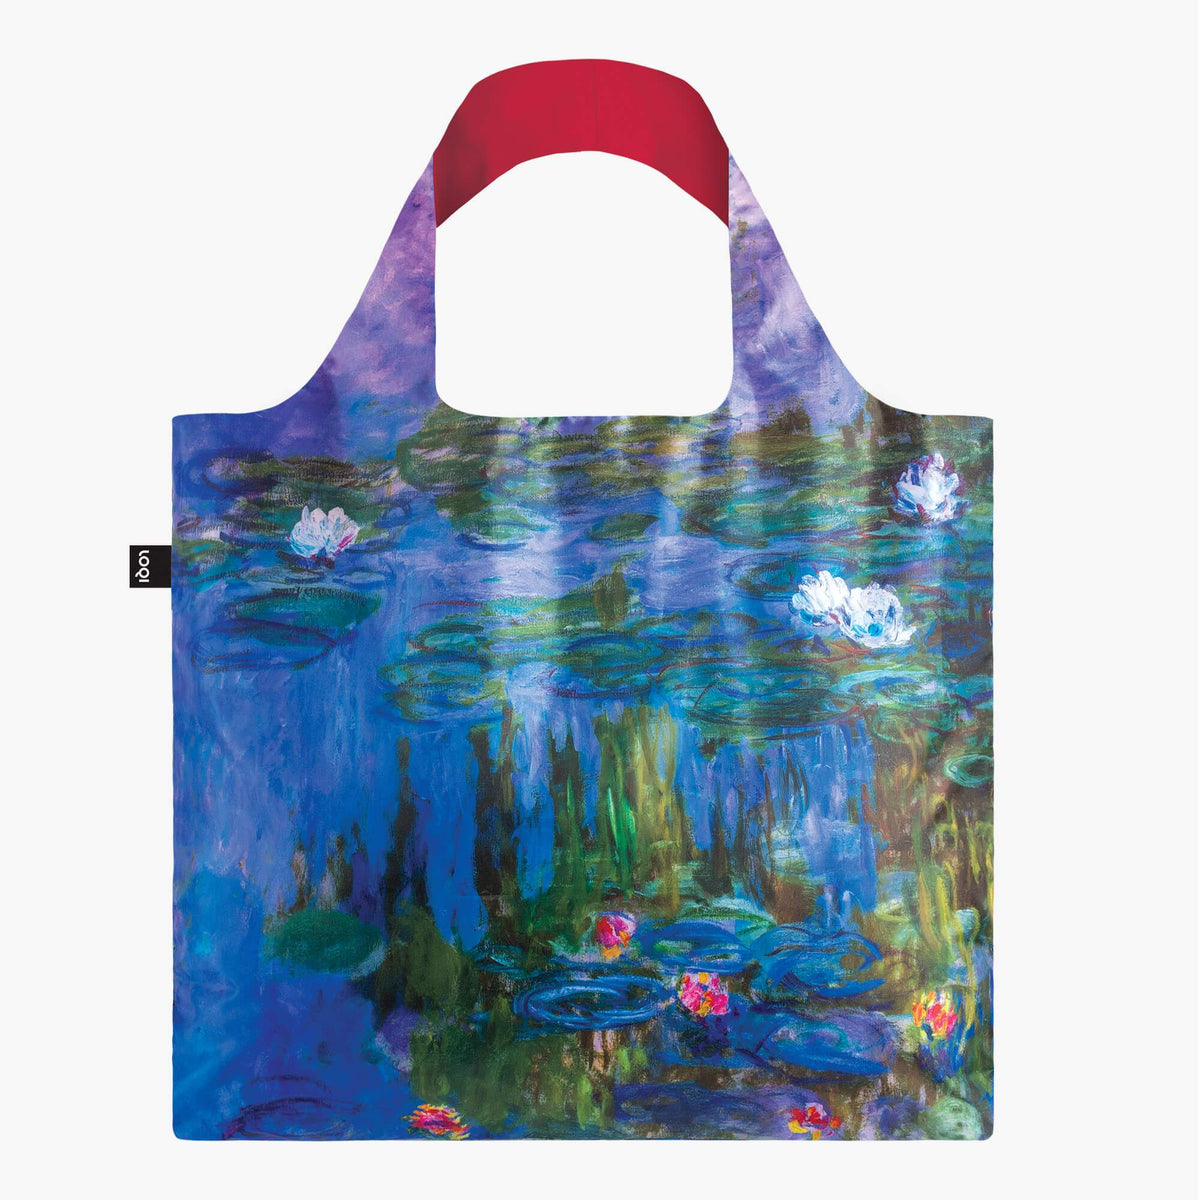 water-lilies-recycled-bag